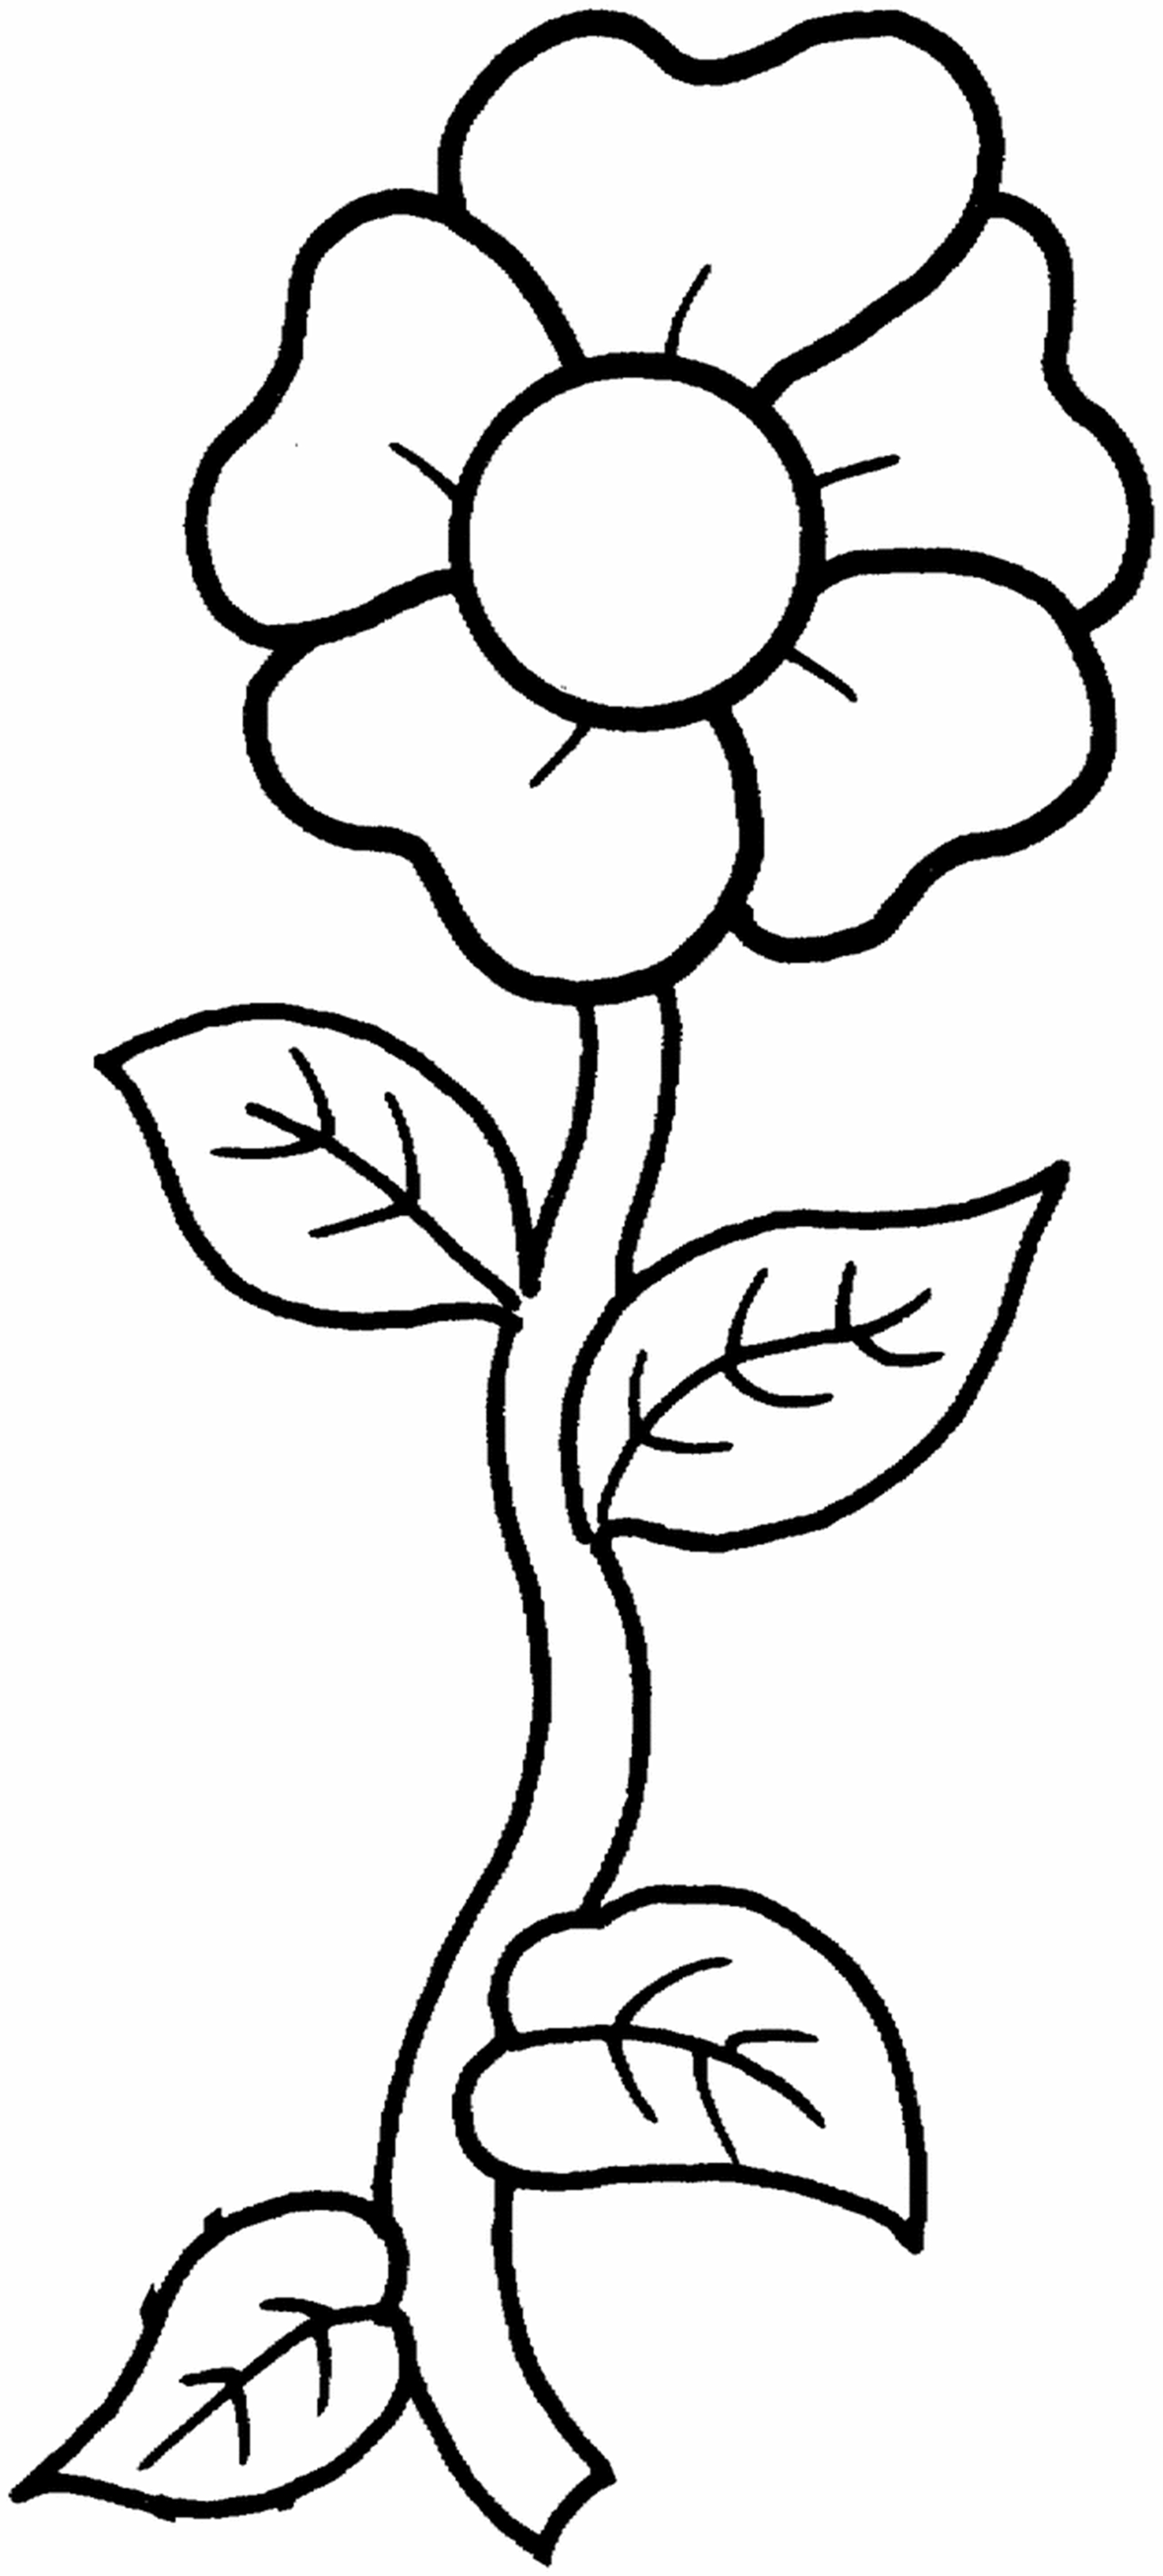 flower coloring page teachers dhilip resources coloring pages page coloring flower